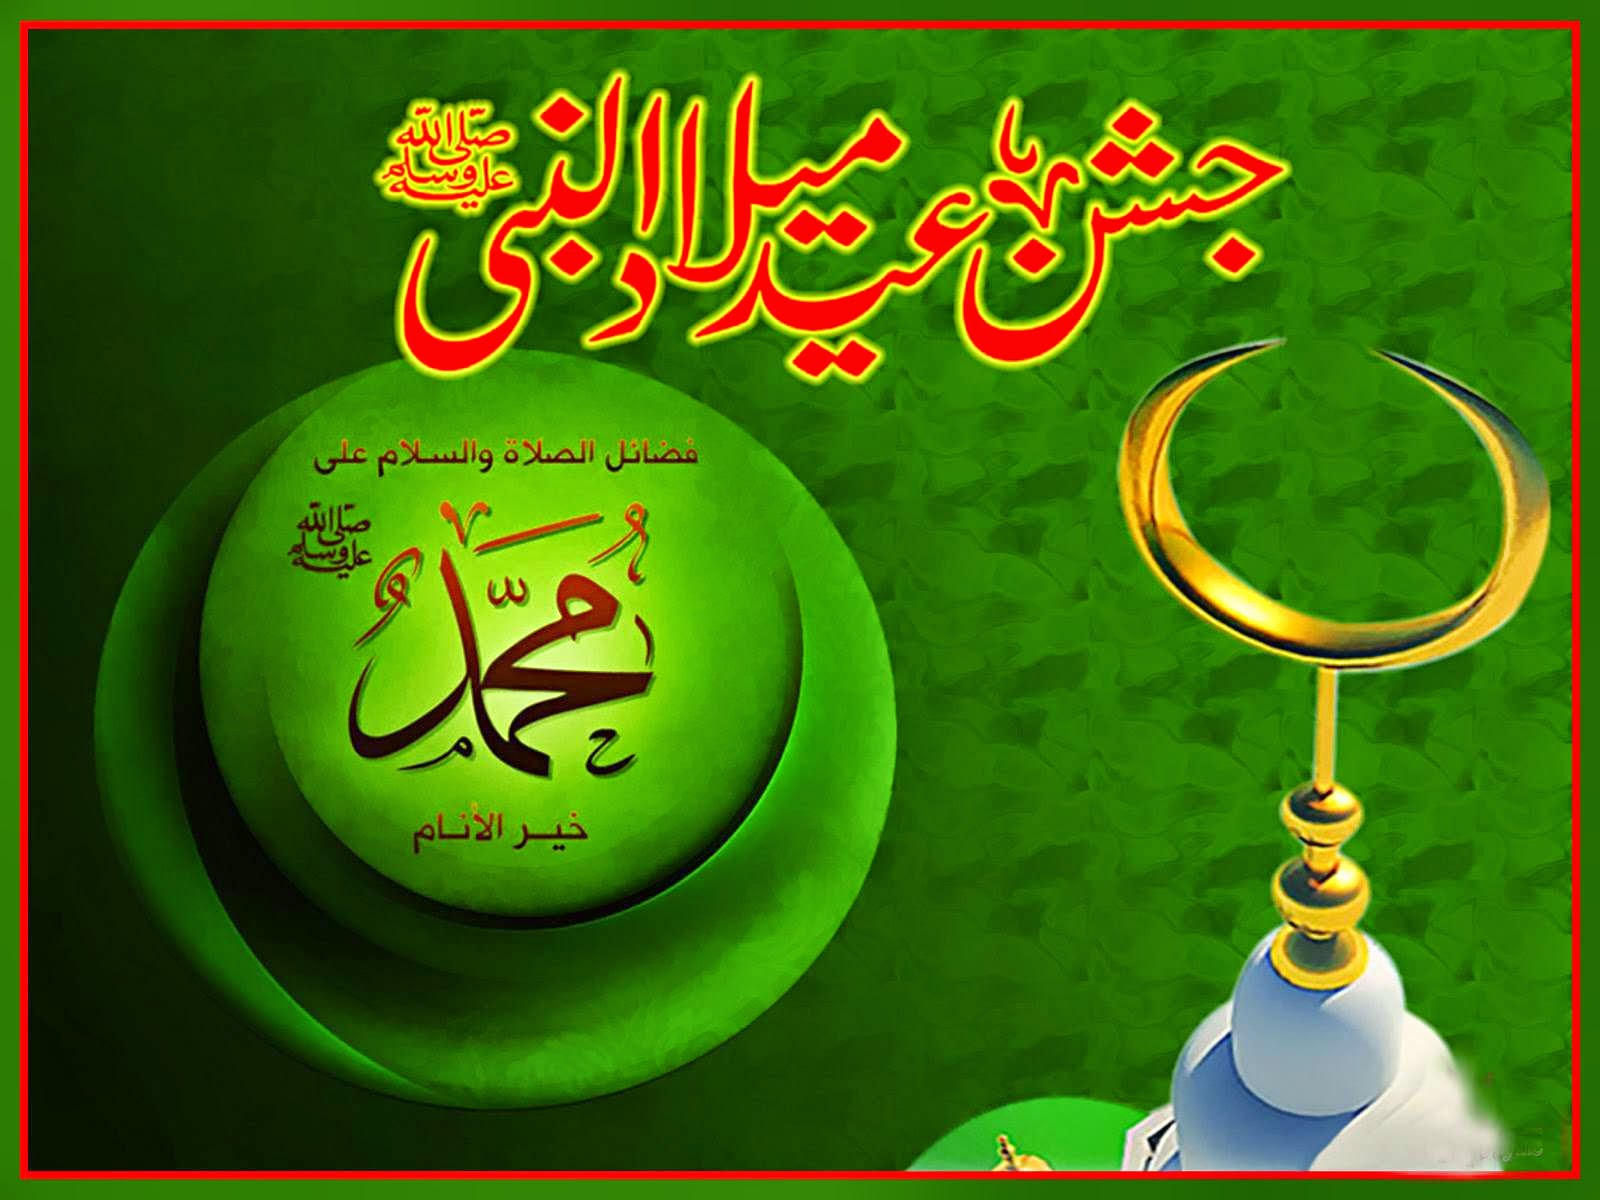 Wallpaper download eid milad un nabi - Happy Greetings For Eid Milad Un Nabi Mubarak 2016 To All Of You Find More Wallpapers On This Site